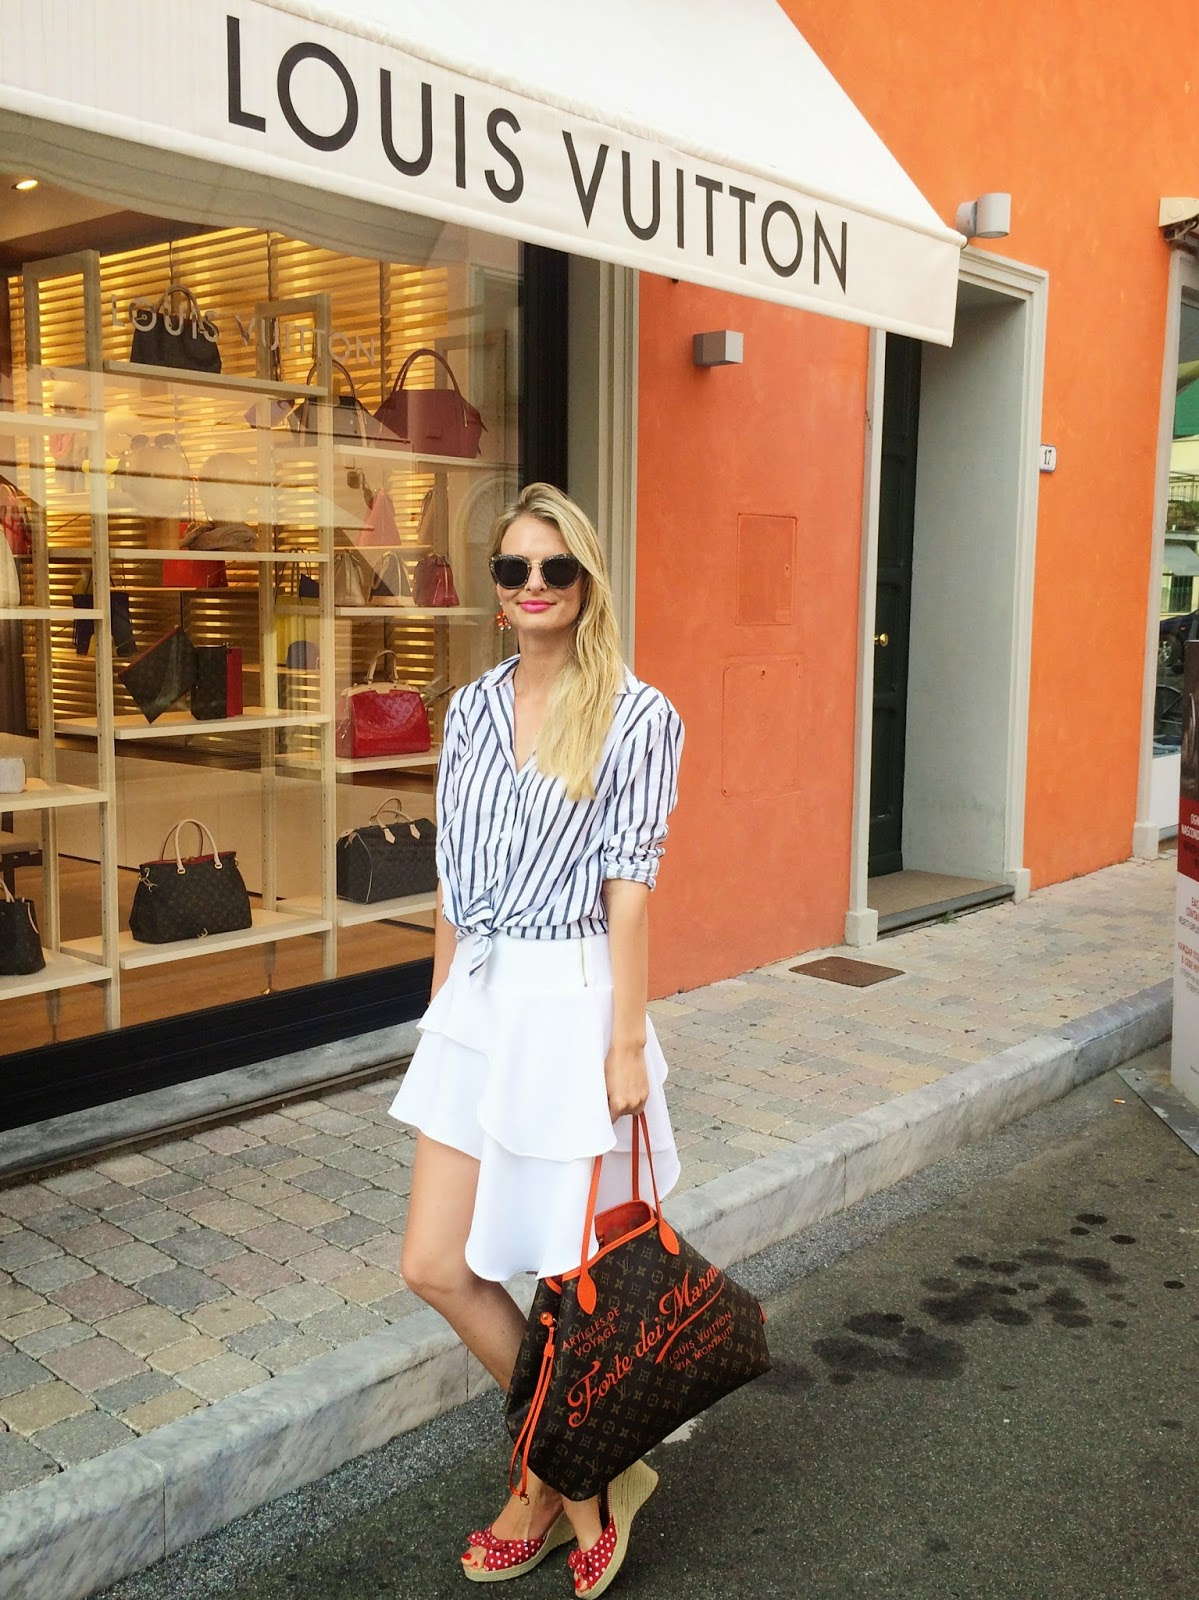 forte dei marmi, forte dei marmi street style, tuscany, italy, italy street style, louis vuitton neverfull, louis vuitton cruise collection